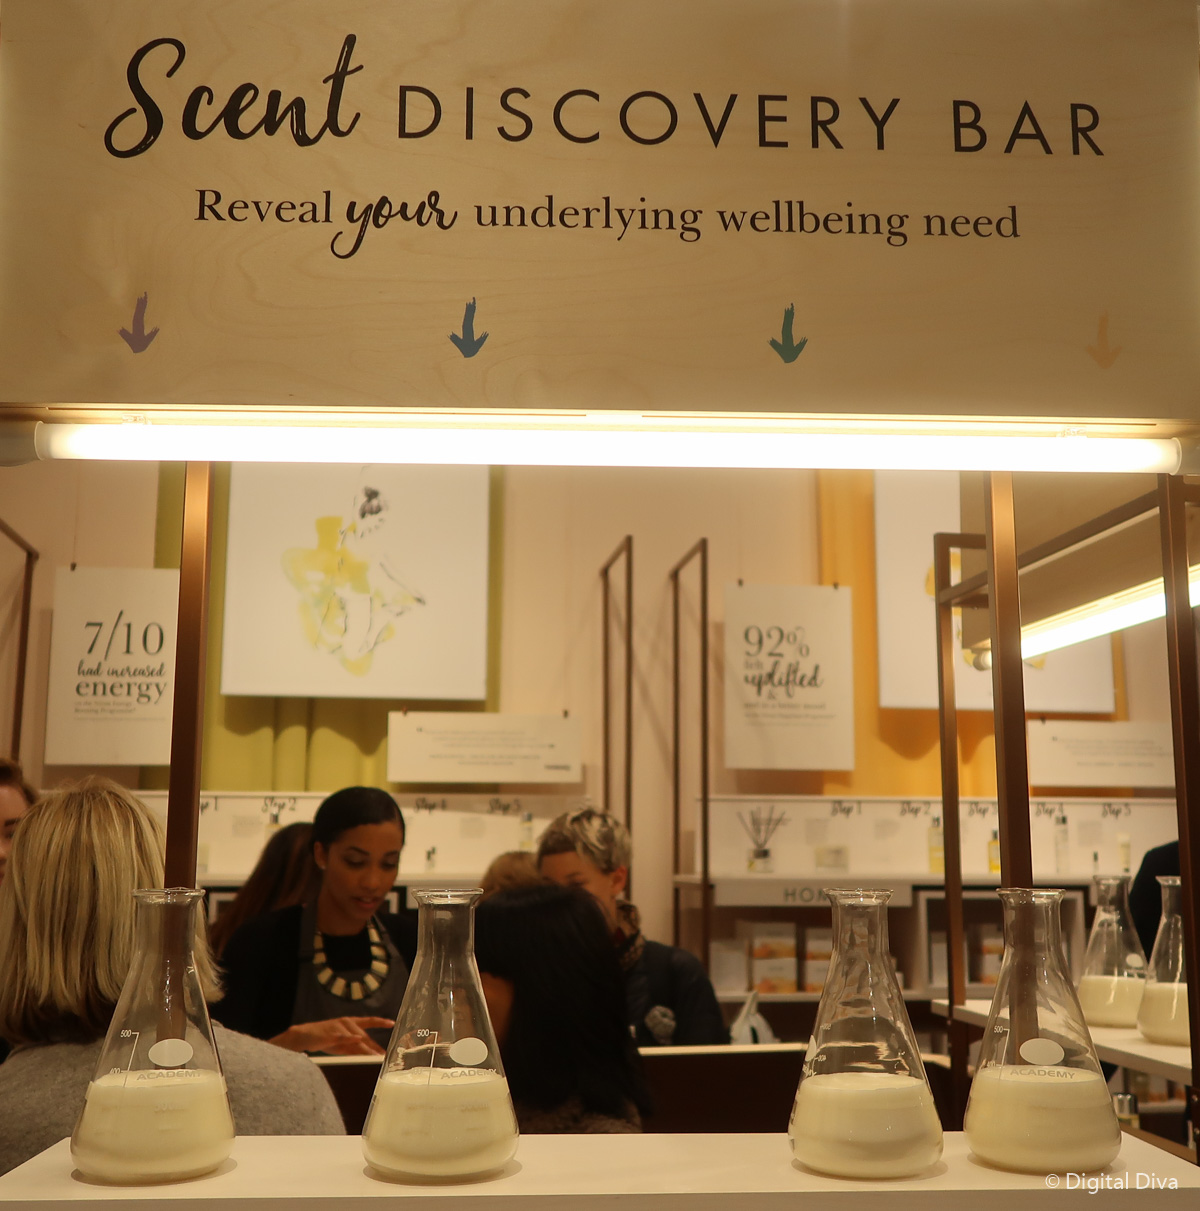 NEOM's Scent Discovery Bar